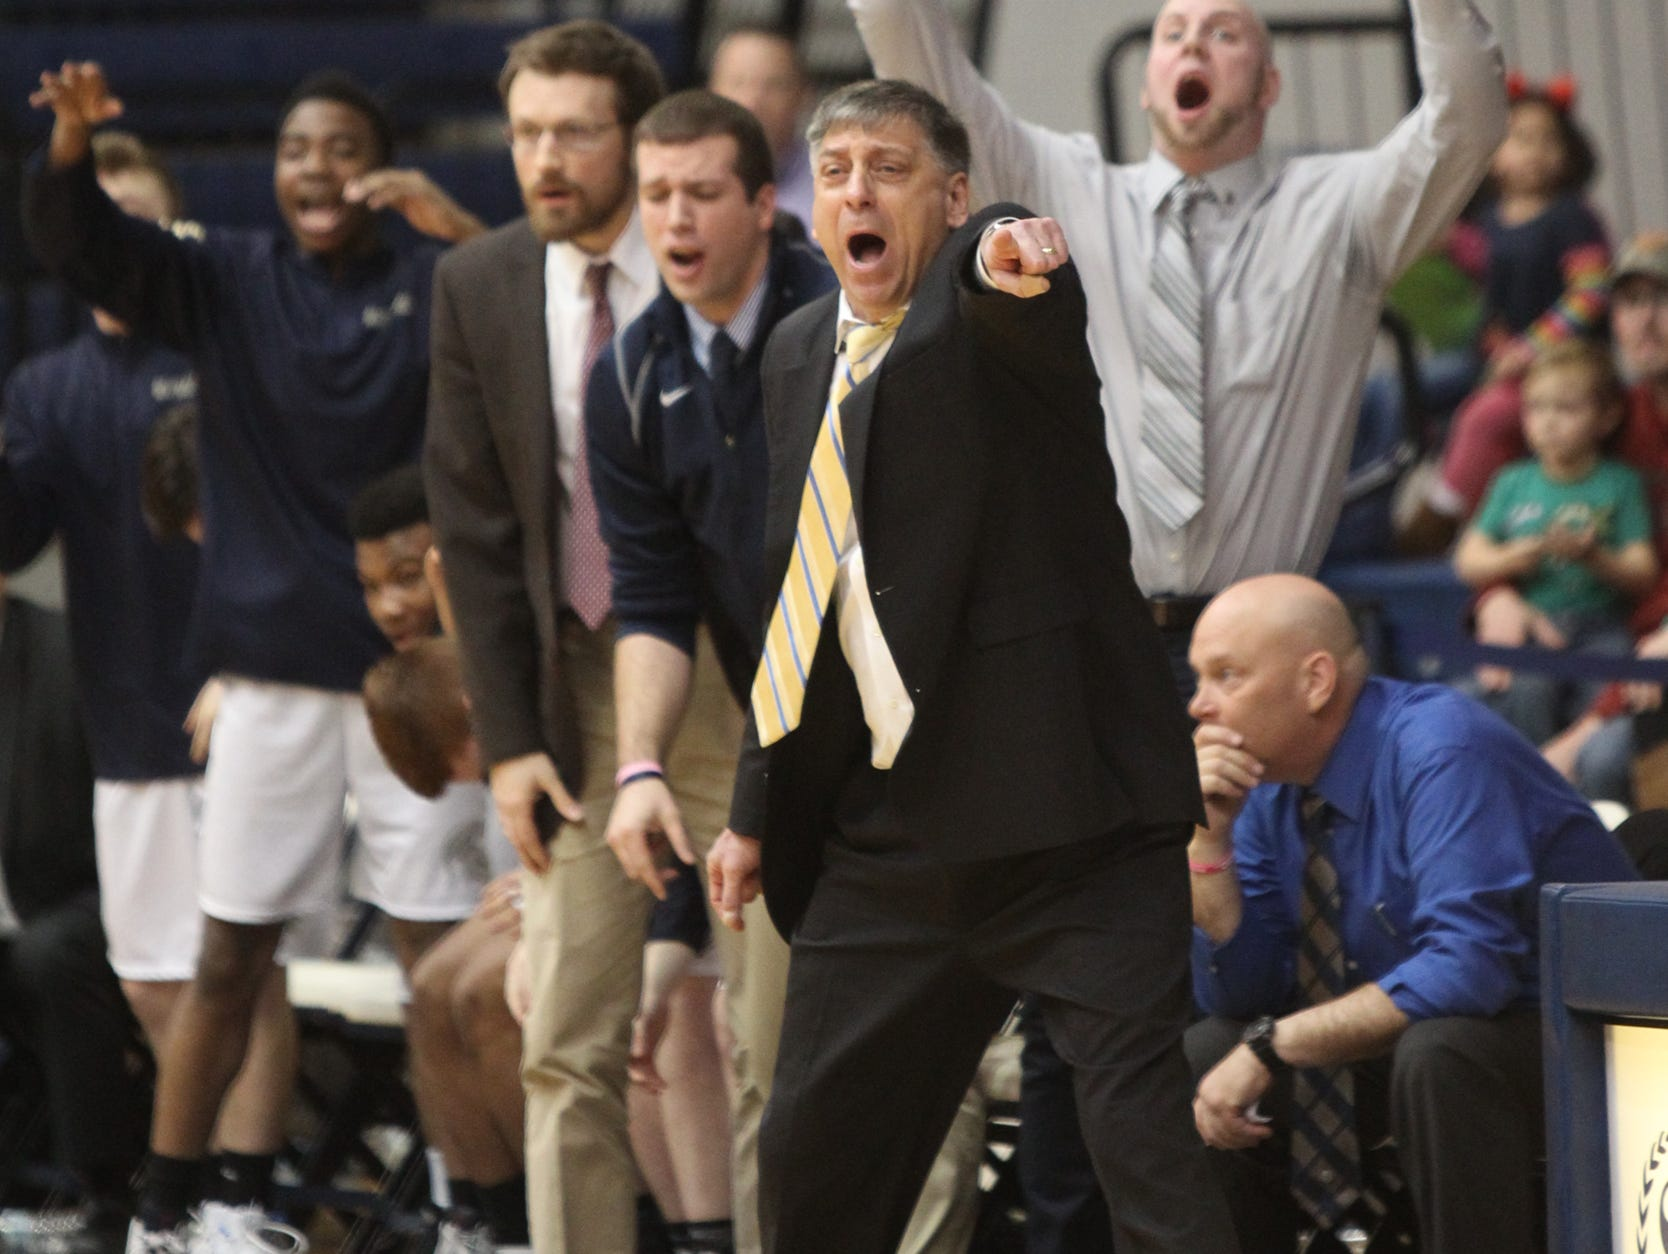 Our Lady of Lourdes boys basketball coach Jim Santoro calls out to his team during its victory over Poughkeepsie on Saturday at Pace University in Pleasantville.